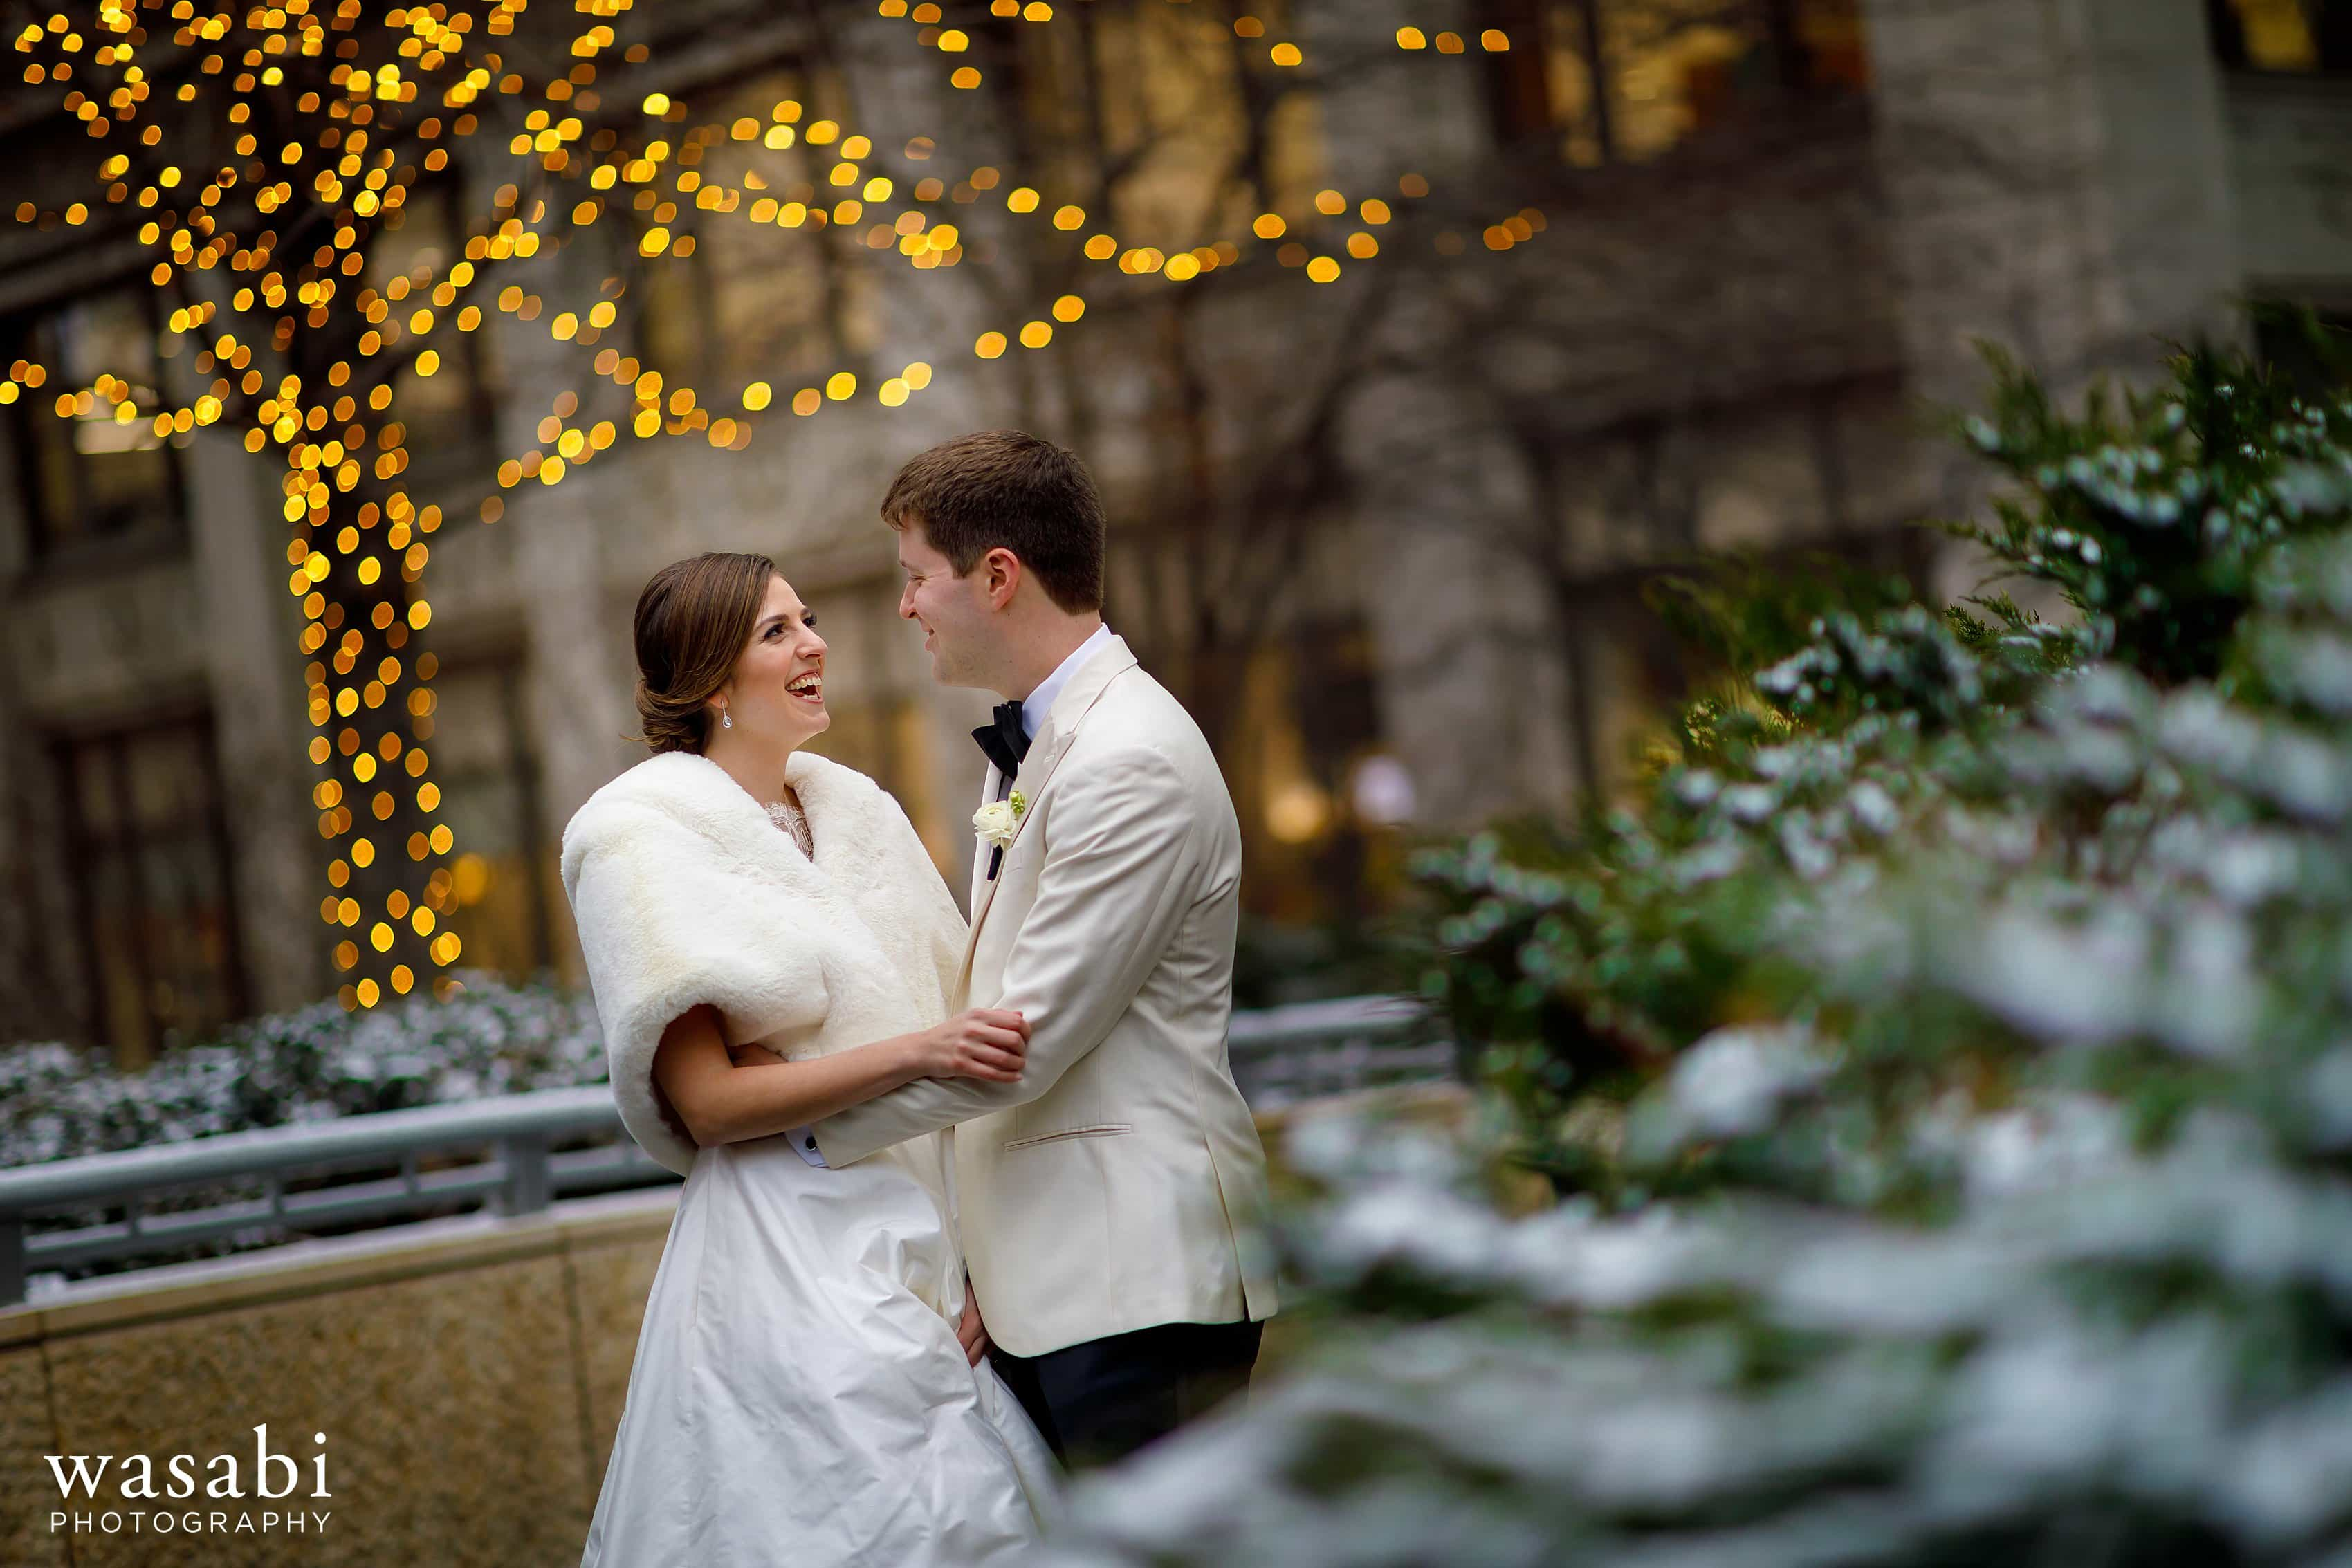 bride and groom pose for a portrait with lights in the background and snow covered tree in the foreground during wedding portraits in downtown Chicago